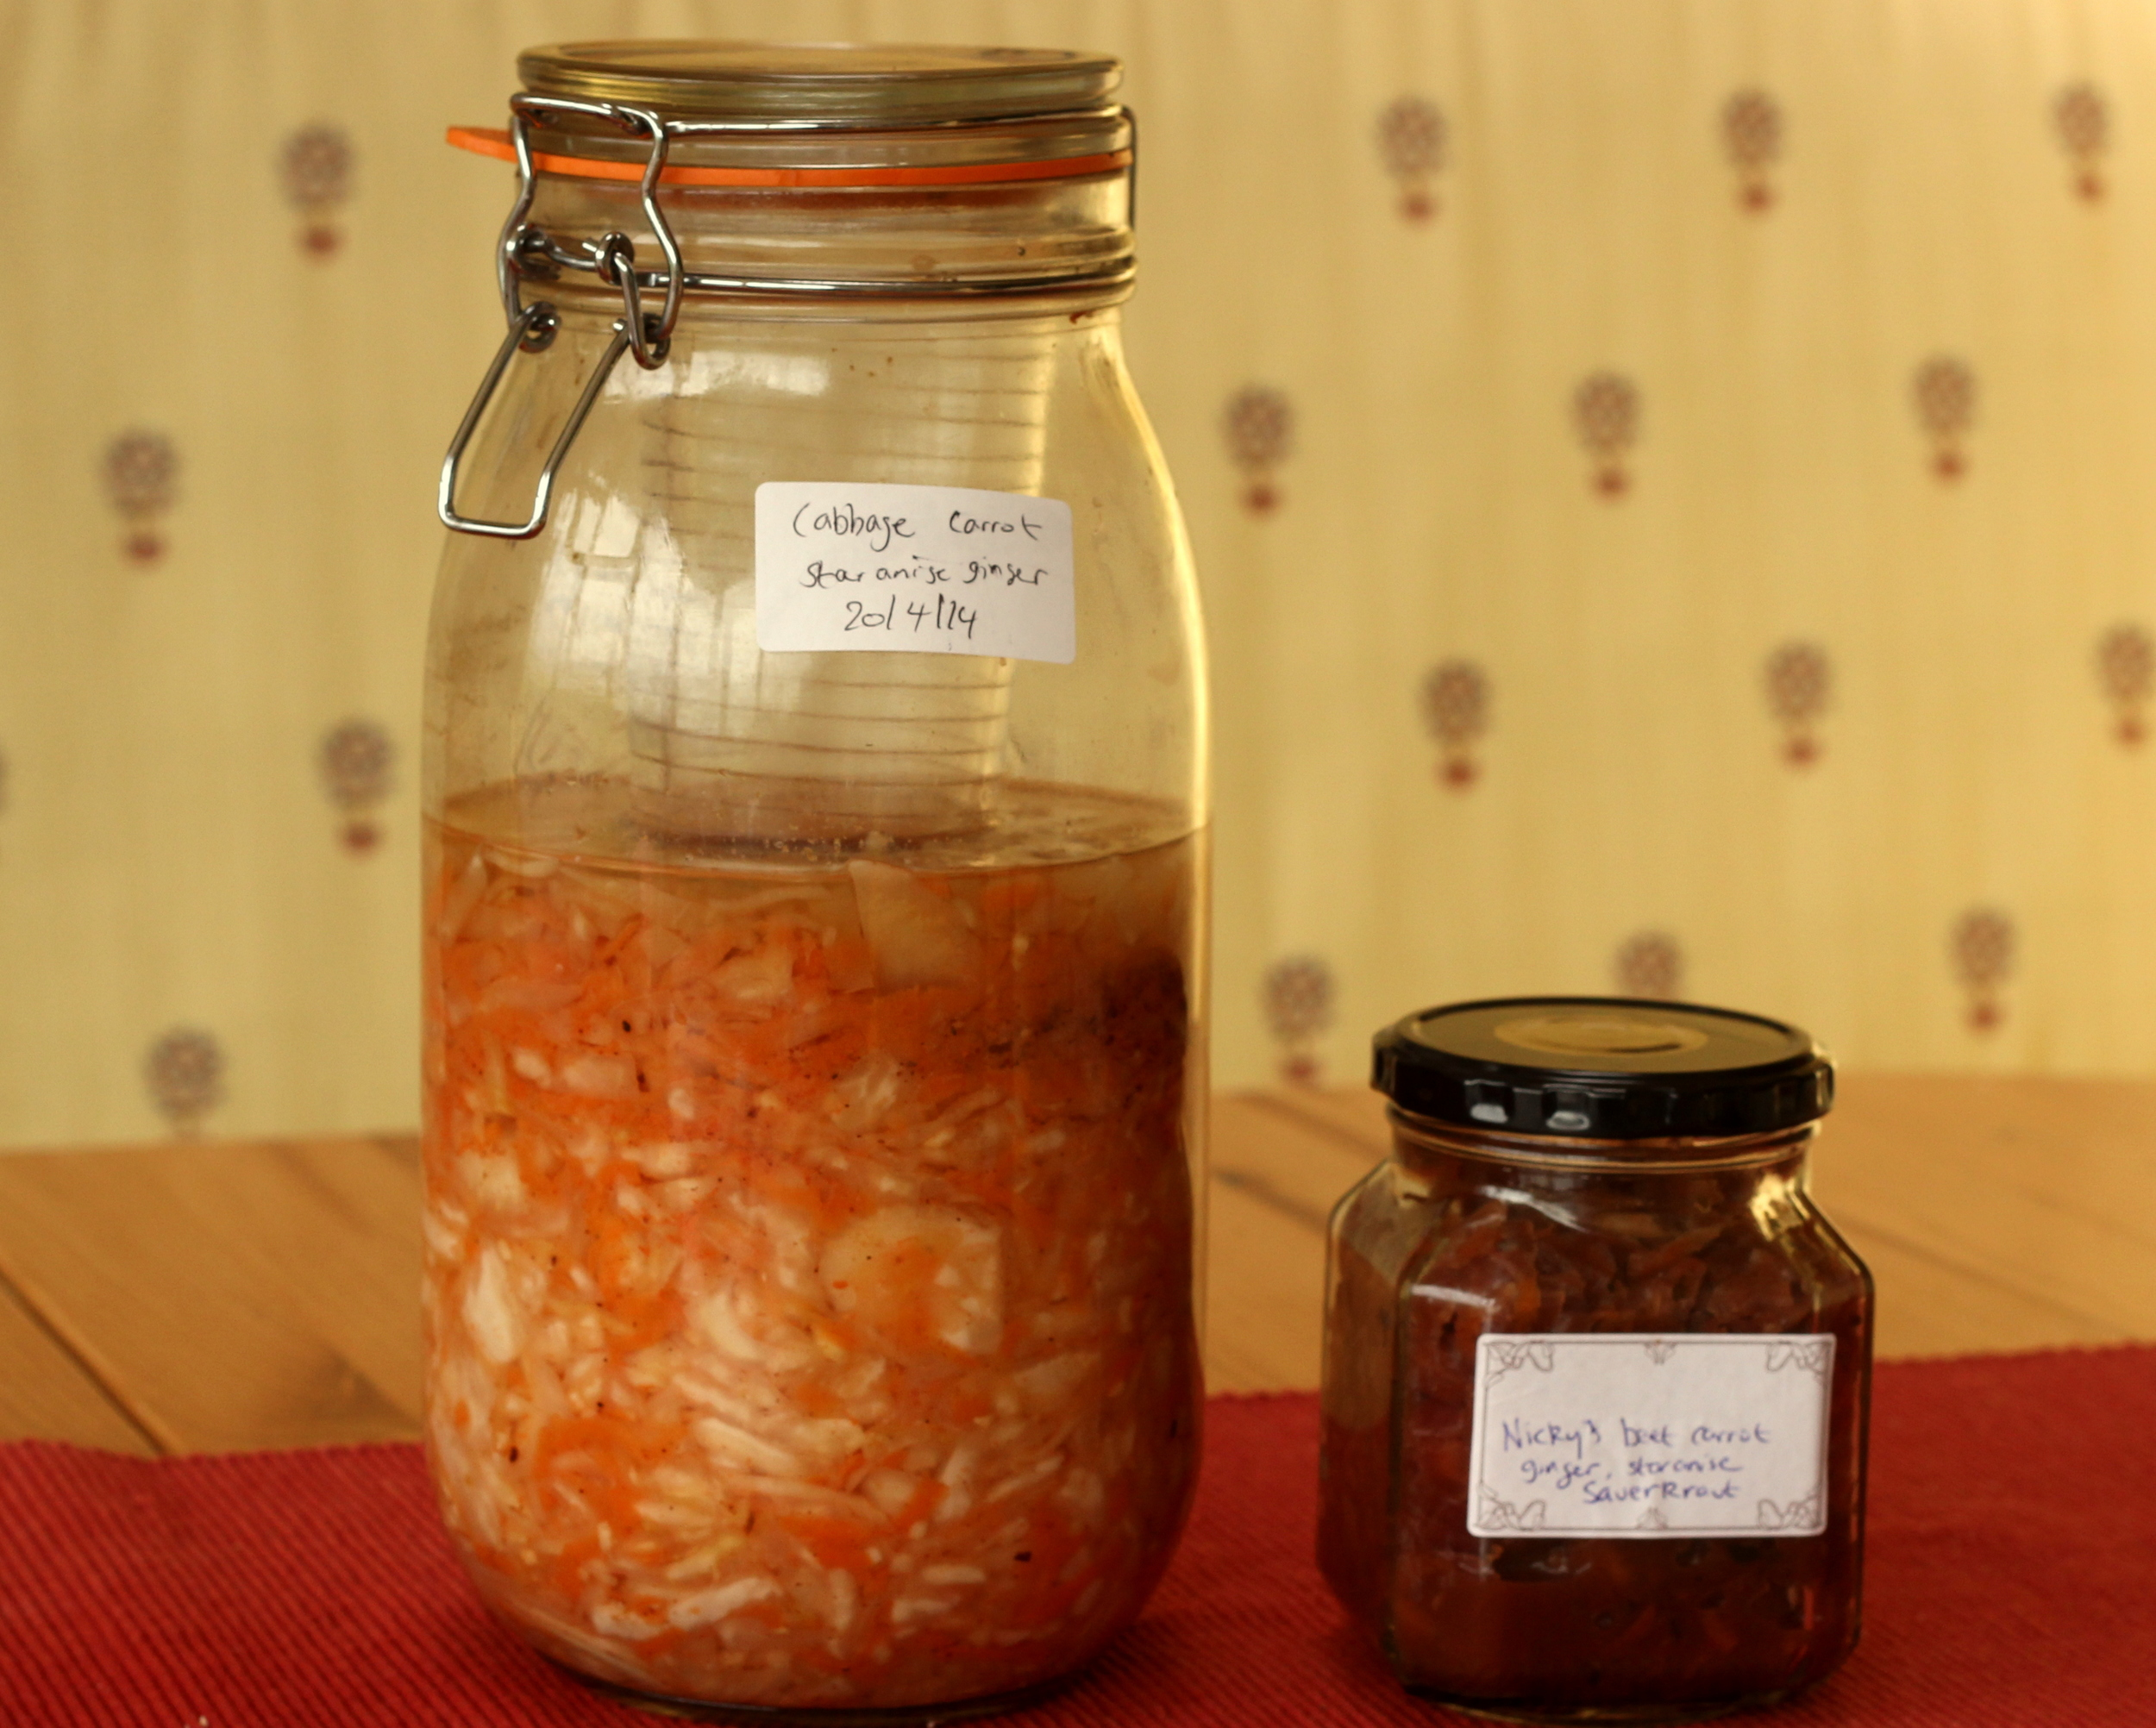 Here is one I fermented in March ready to be enjoyed, and one I started fermenting in April without the beetroot.